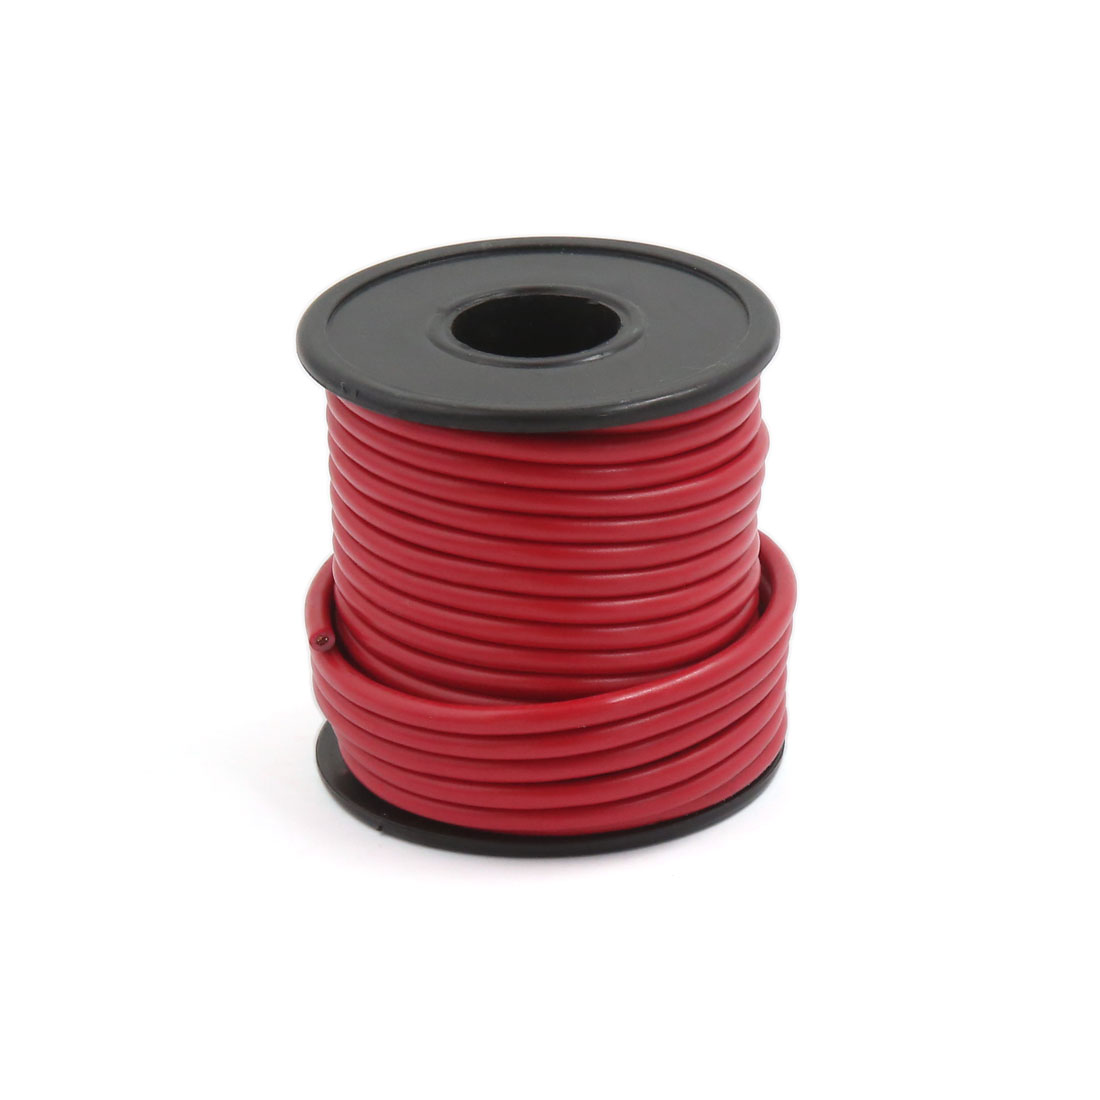 10M 1.5mm2 Copper Conductor Extension Insulated Electric Power Cable Wire Red